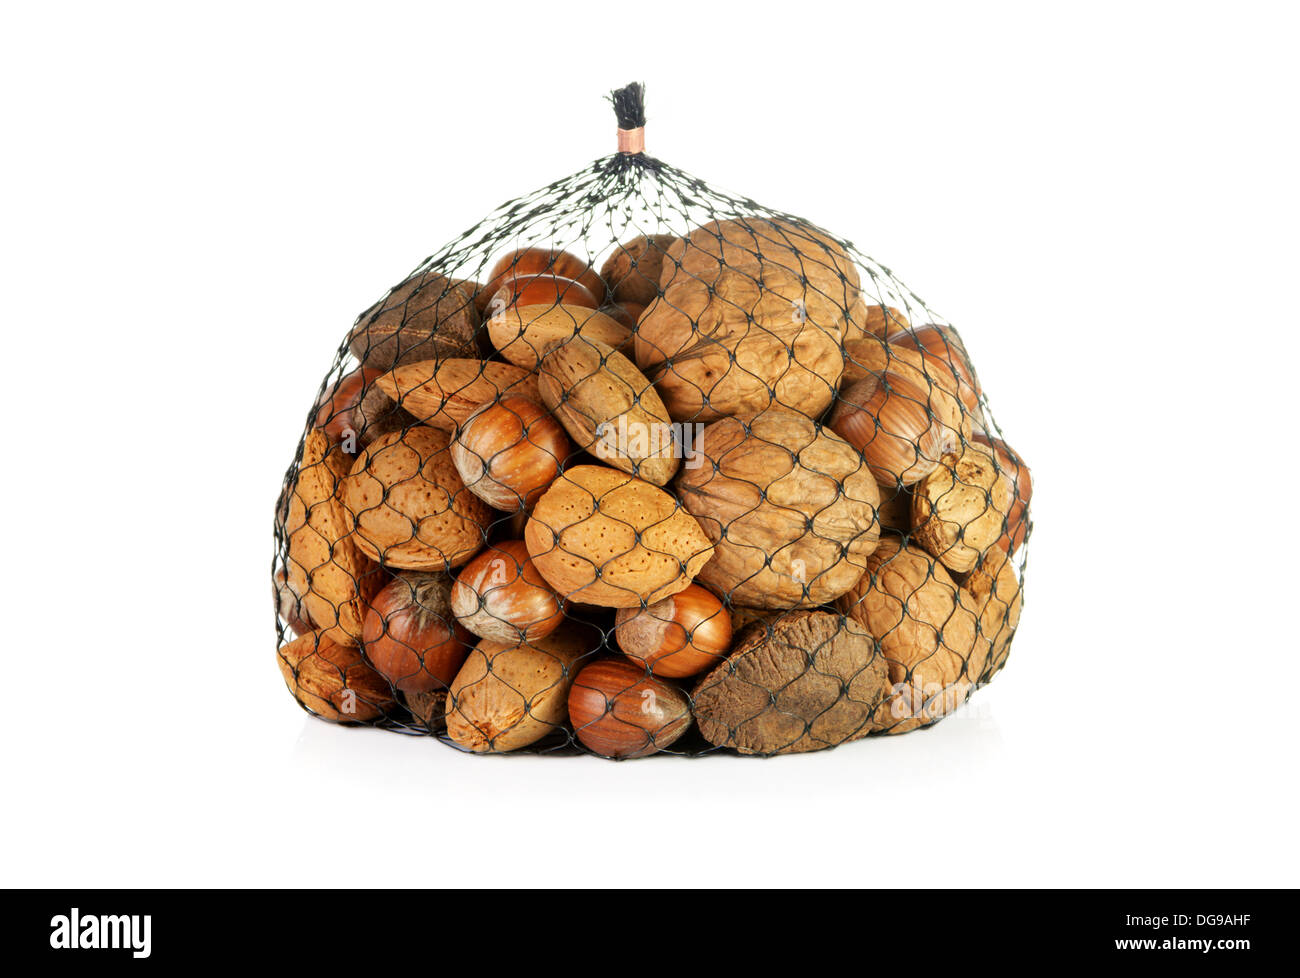 Mixed nuts in a net on a white background - Stock Image